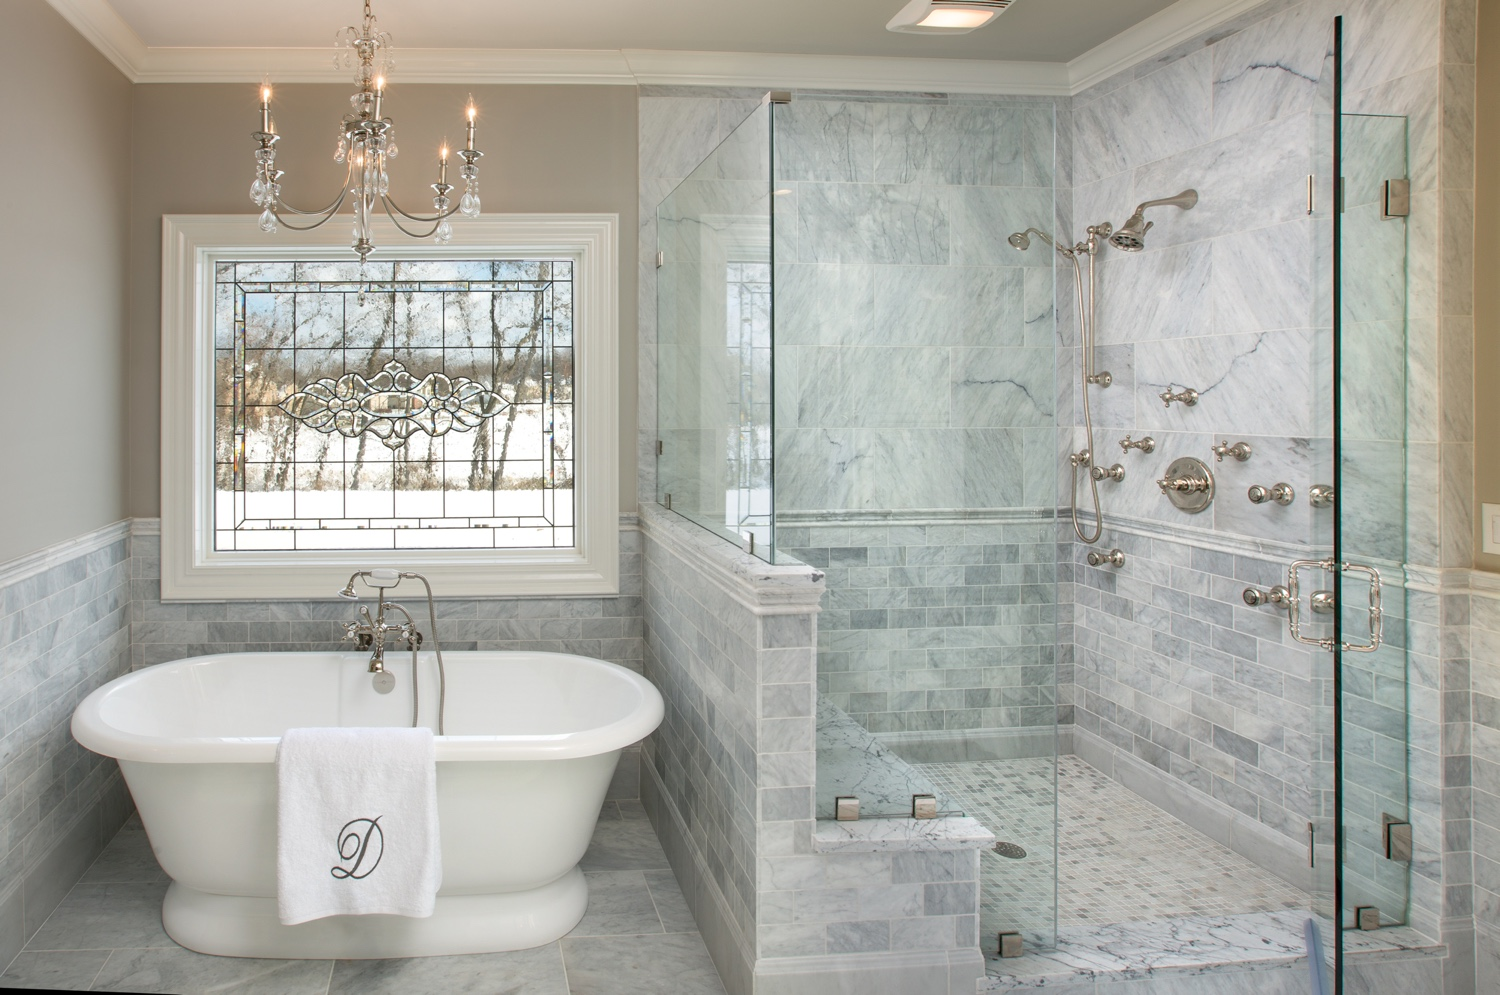 Bathroom Remodeling Columbus, Award Winning Bath Remodel Designers